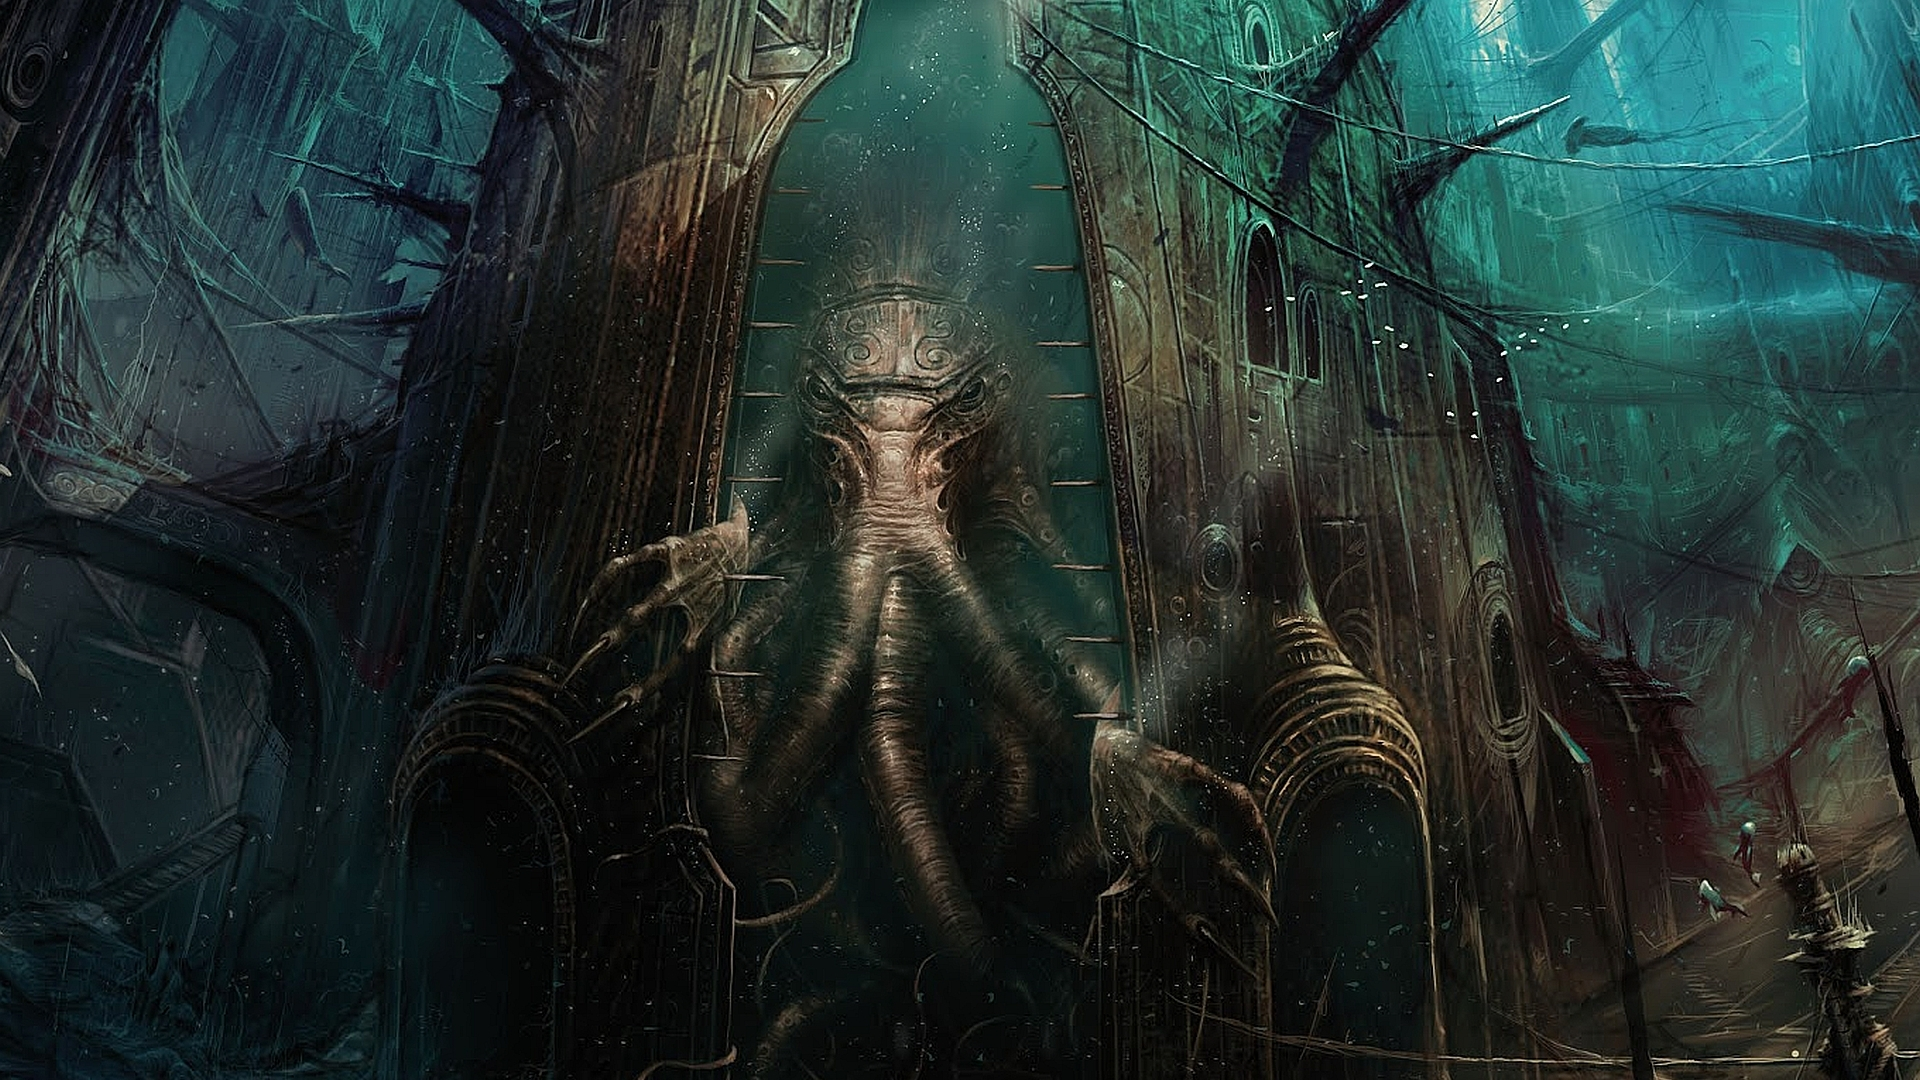 HQ Cthulhu Wallpapers | File 1389.95Kb